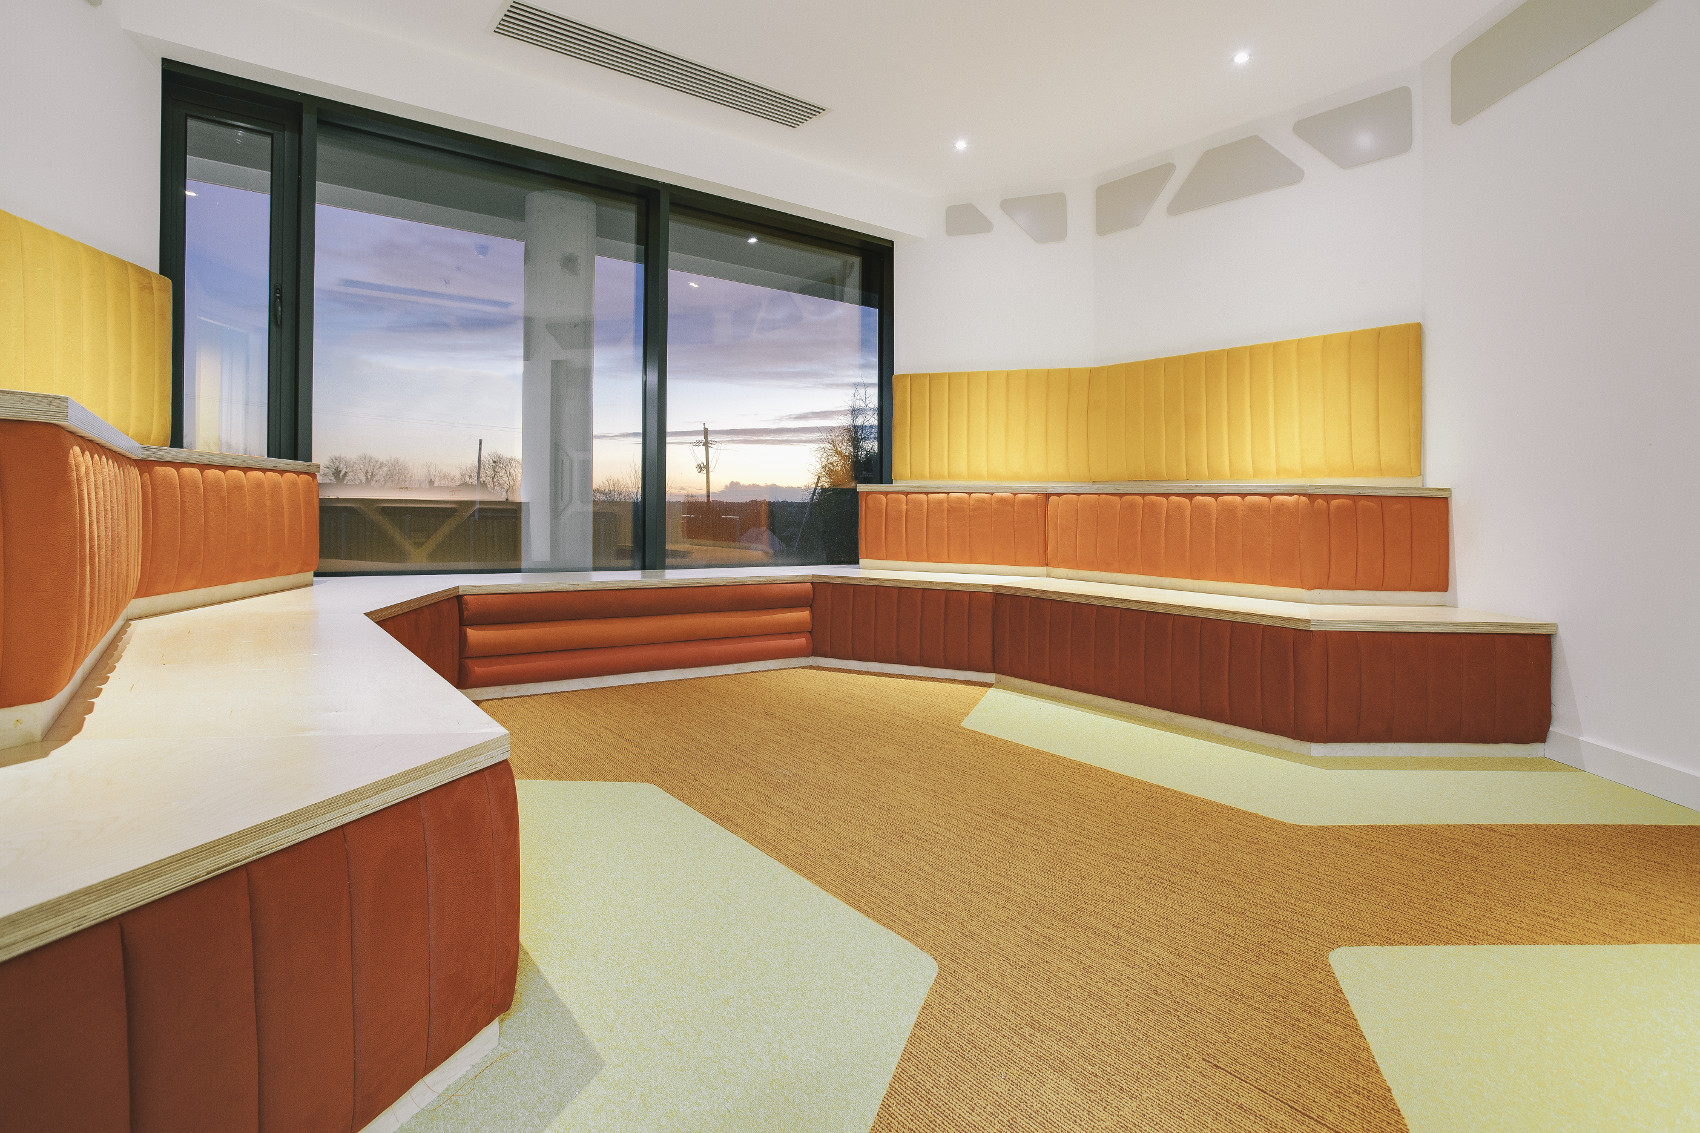 Office Fitout-Vistamed-Think Tank